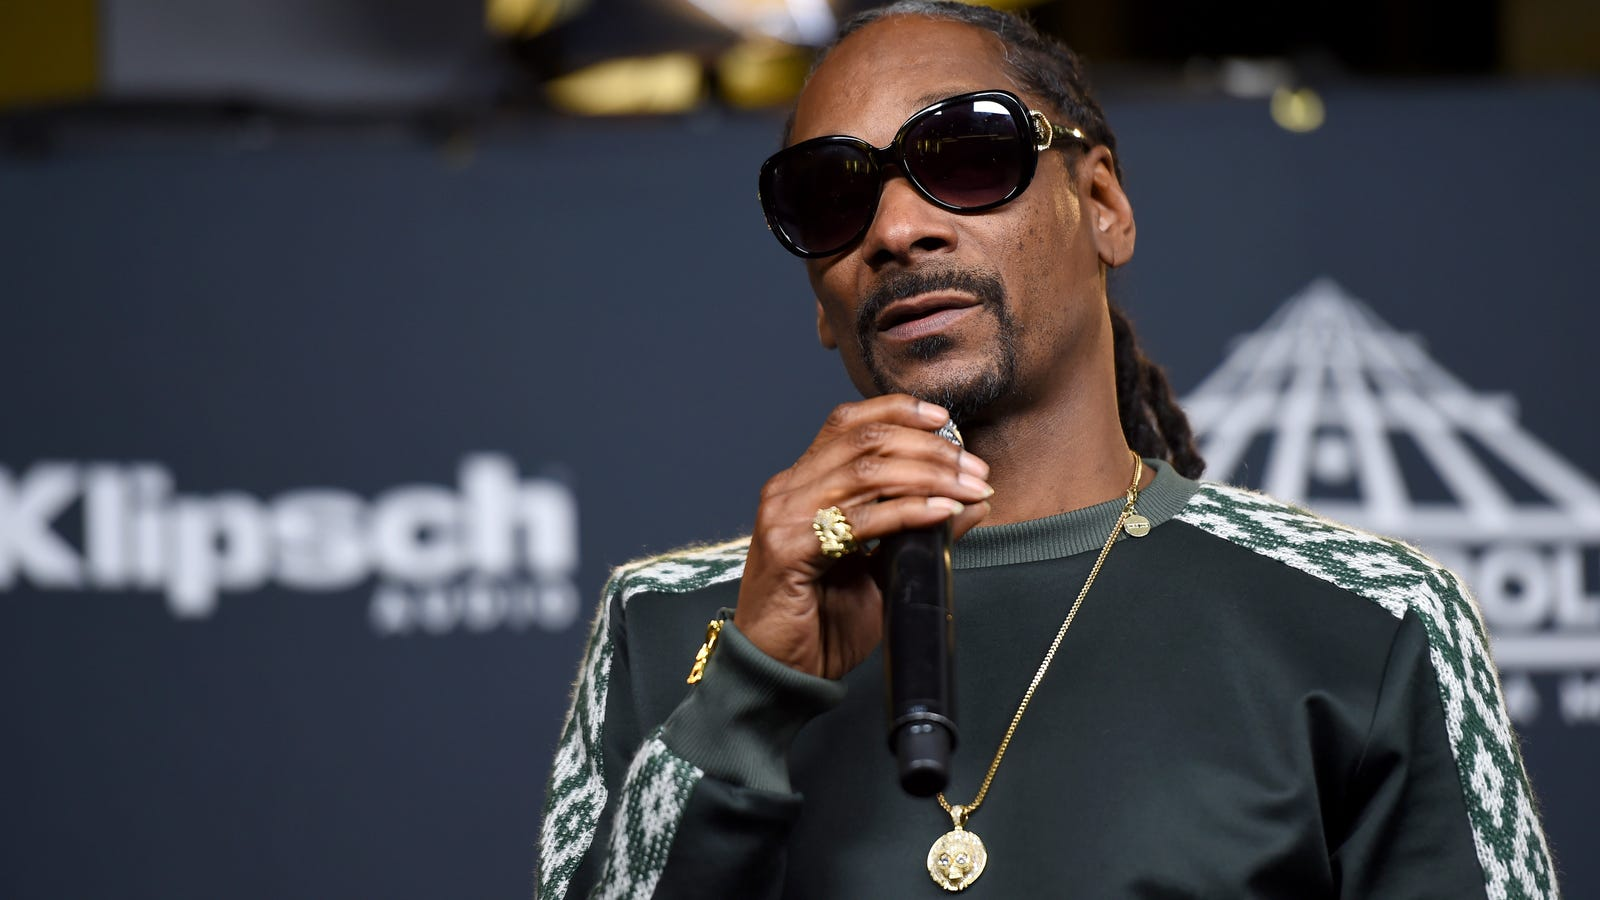 Snoop dogg will help raise money for water in flint mich by snoop dogg will help raise money for water in flint mich by appearing at fundraising celebrity basketball game kristyandbryce Gallery